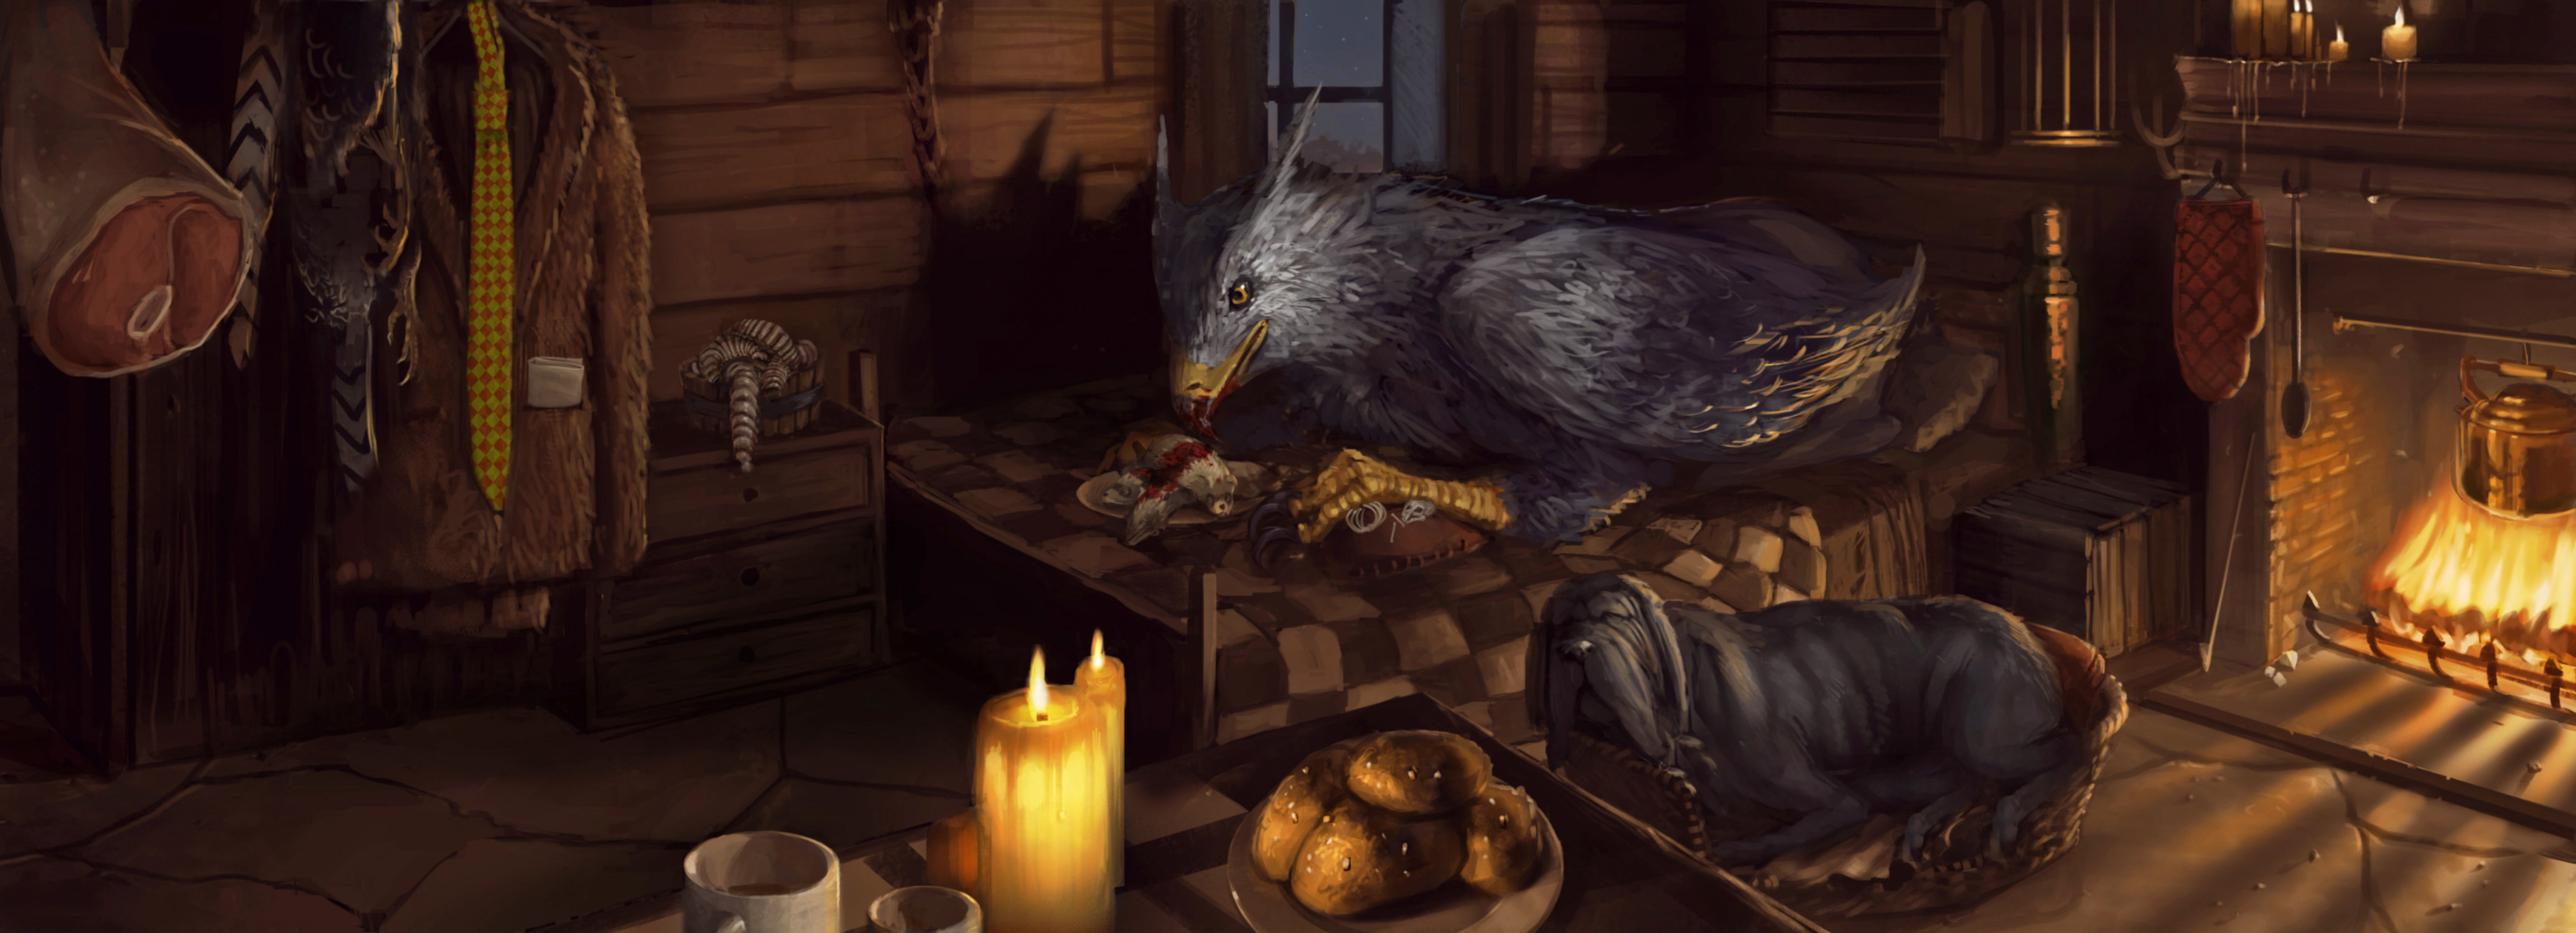 Buckbeak the Hippogriff in Hagrid's hut with Fang.